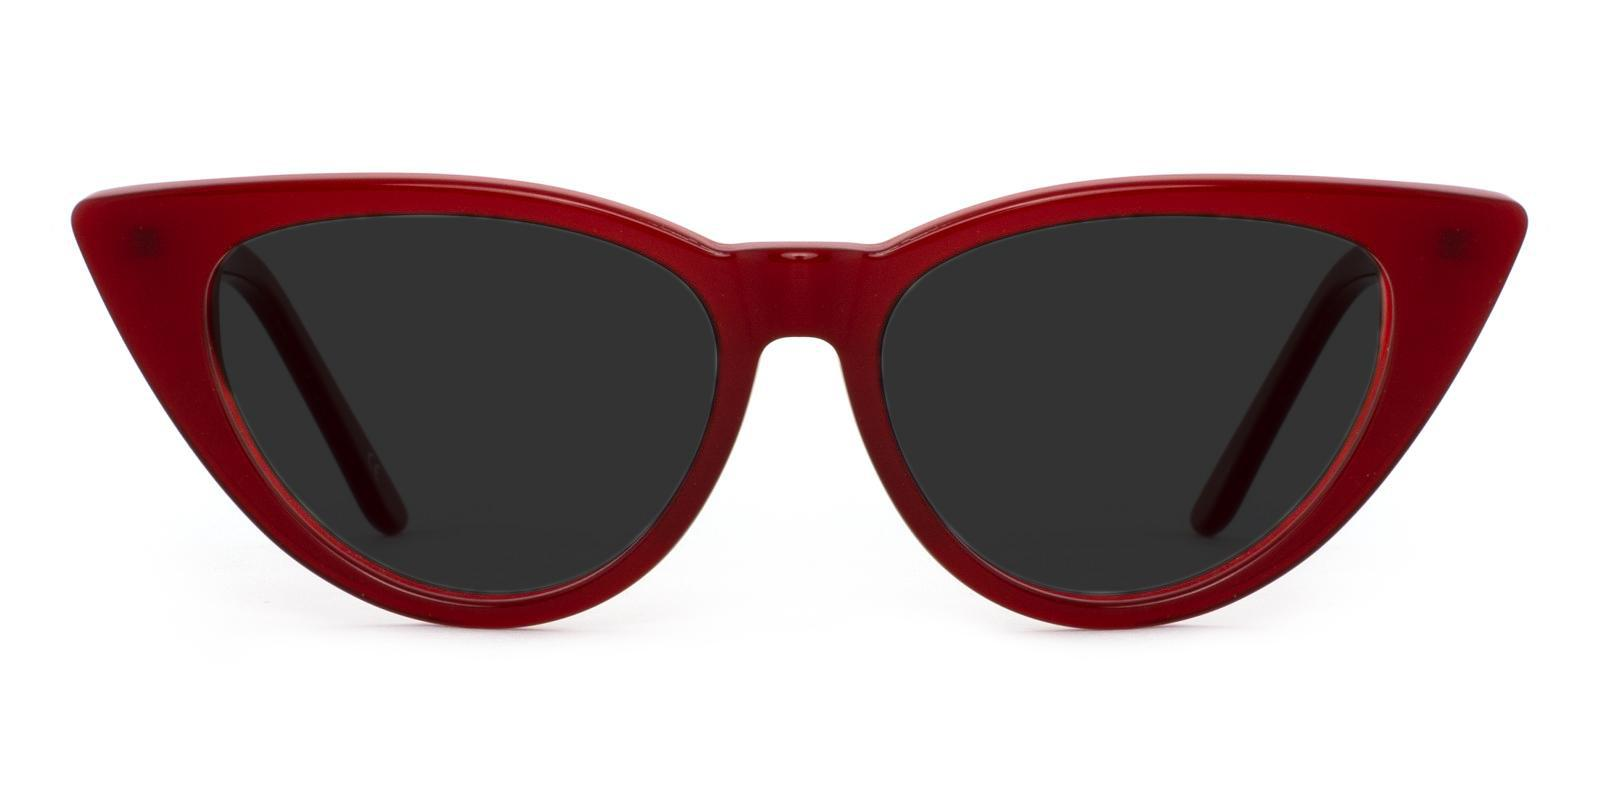 Escape Red Acetate SpringHinges , Sunglasses , UniversalBridgeFit Frames from ABBE Glasses